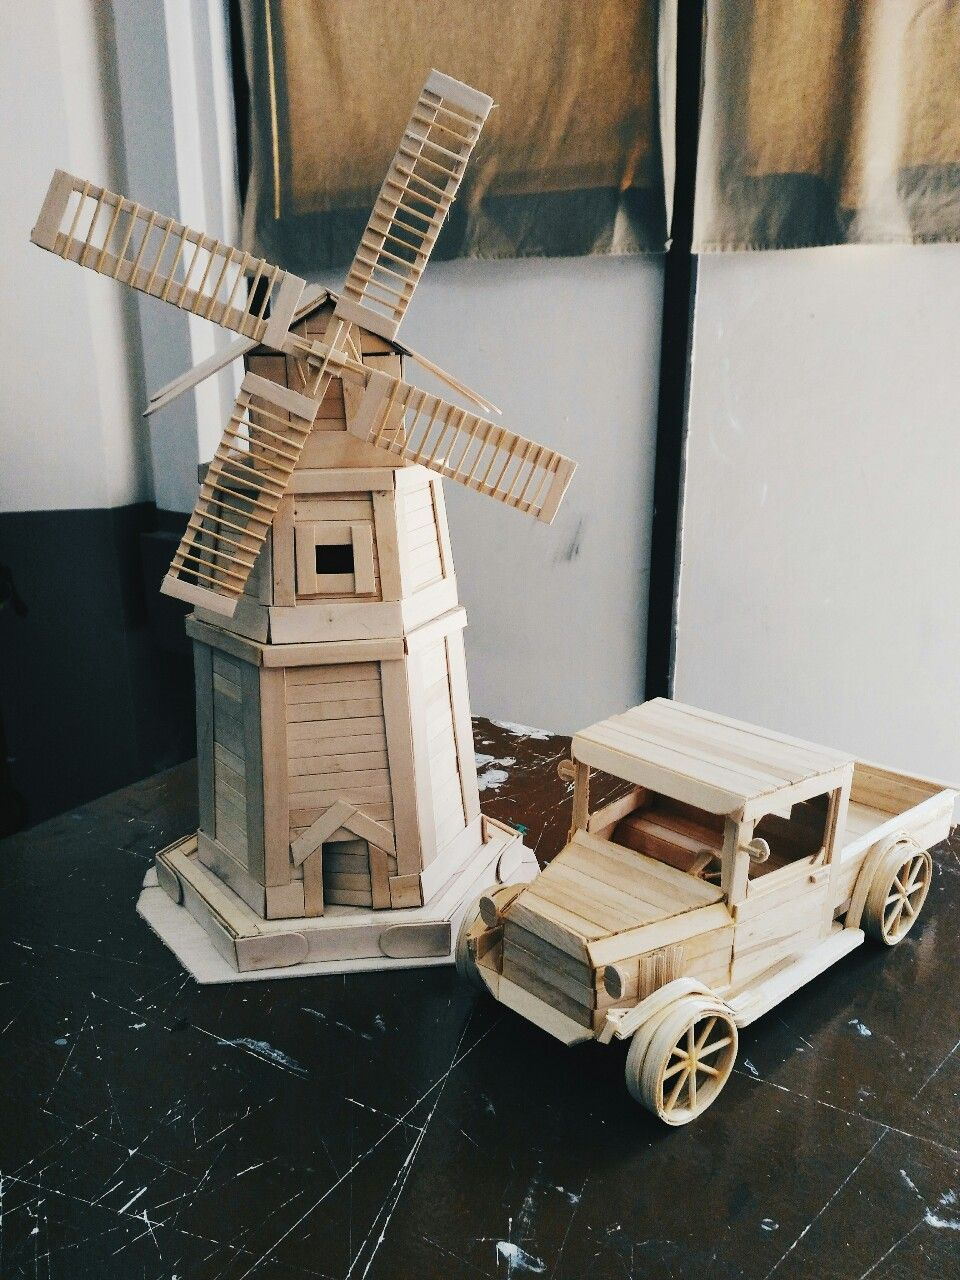 windmill made of popsicle sticks :-)) artmeee | crafts